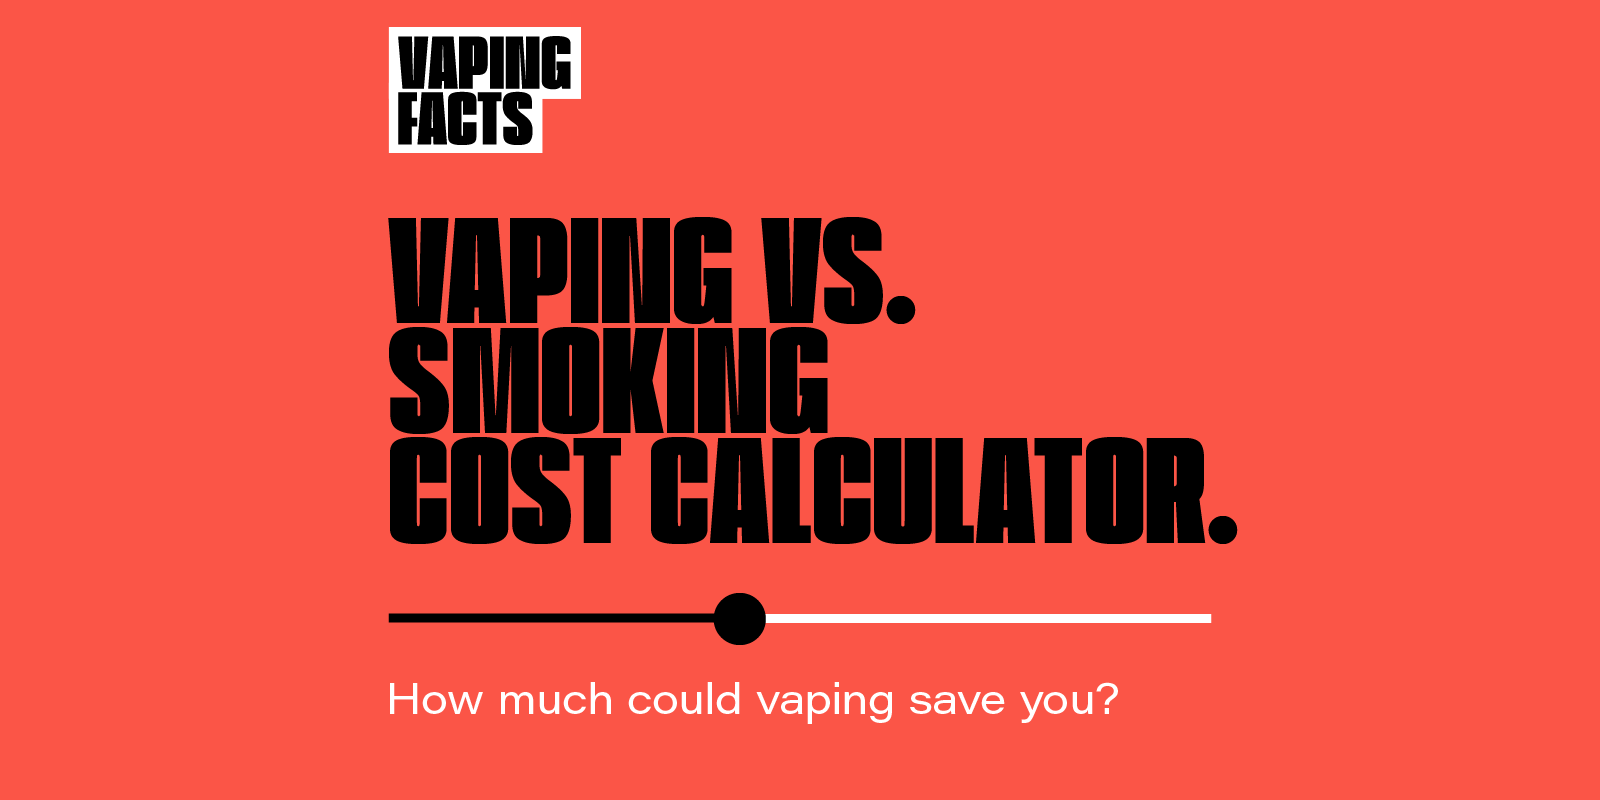 Cost Calculator | Vaping Facts